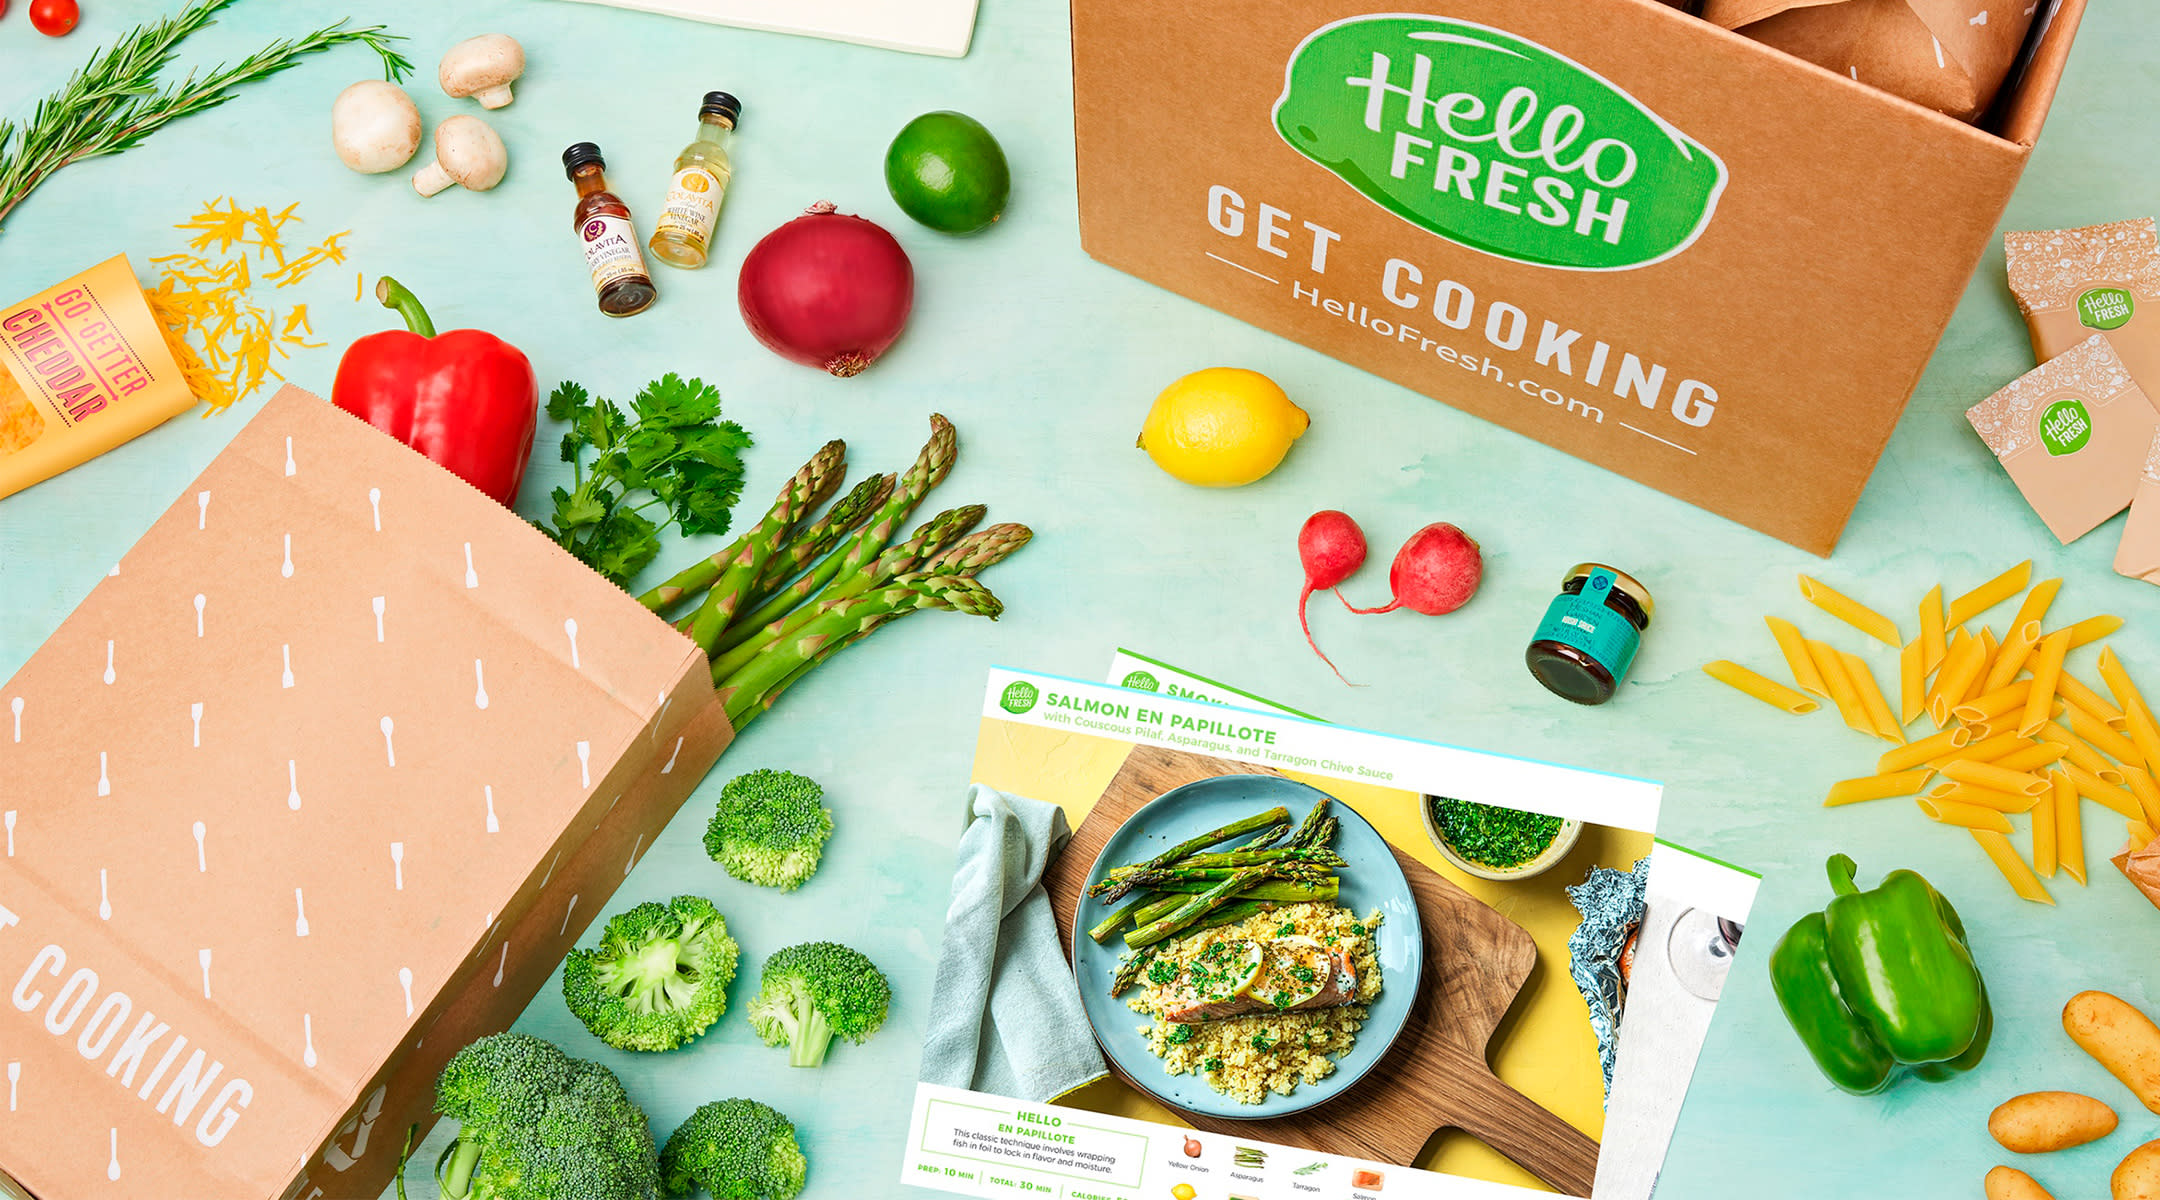 hello fresh meal subscription ingredients